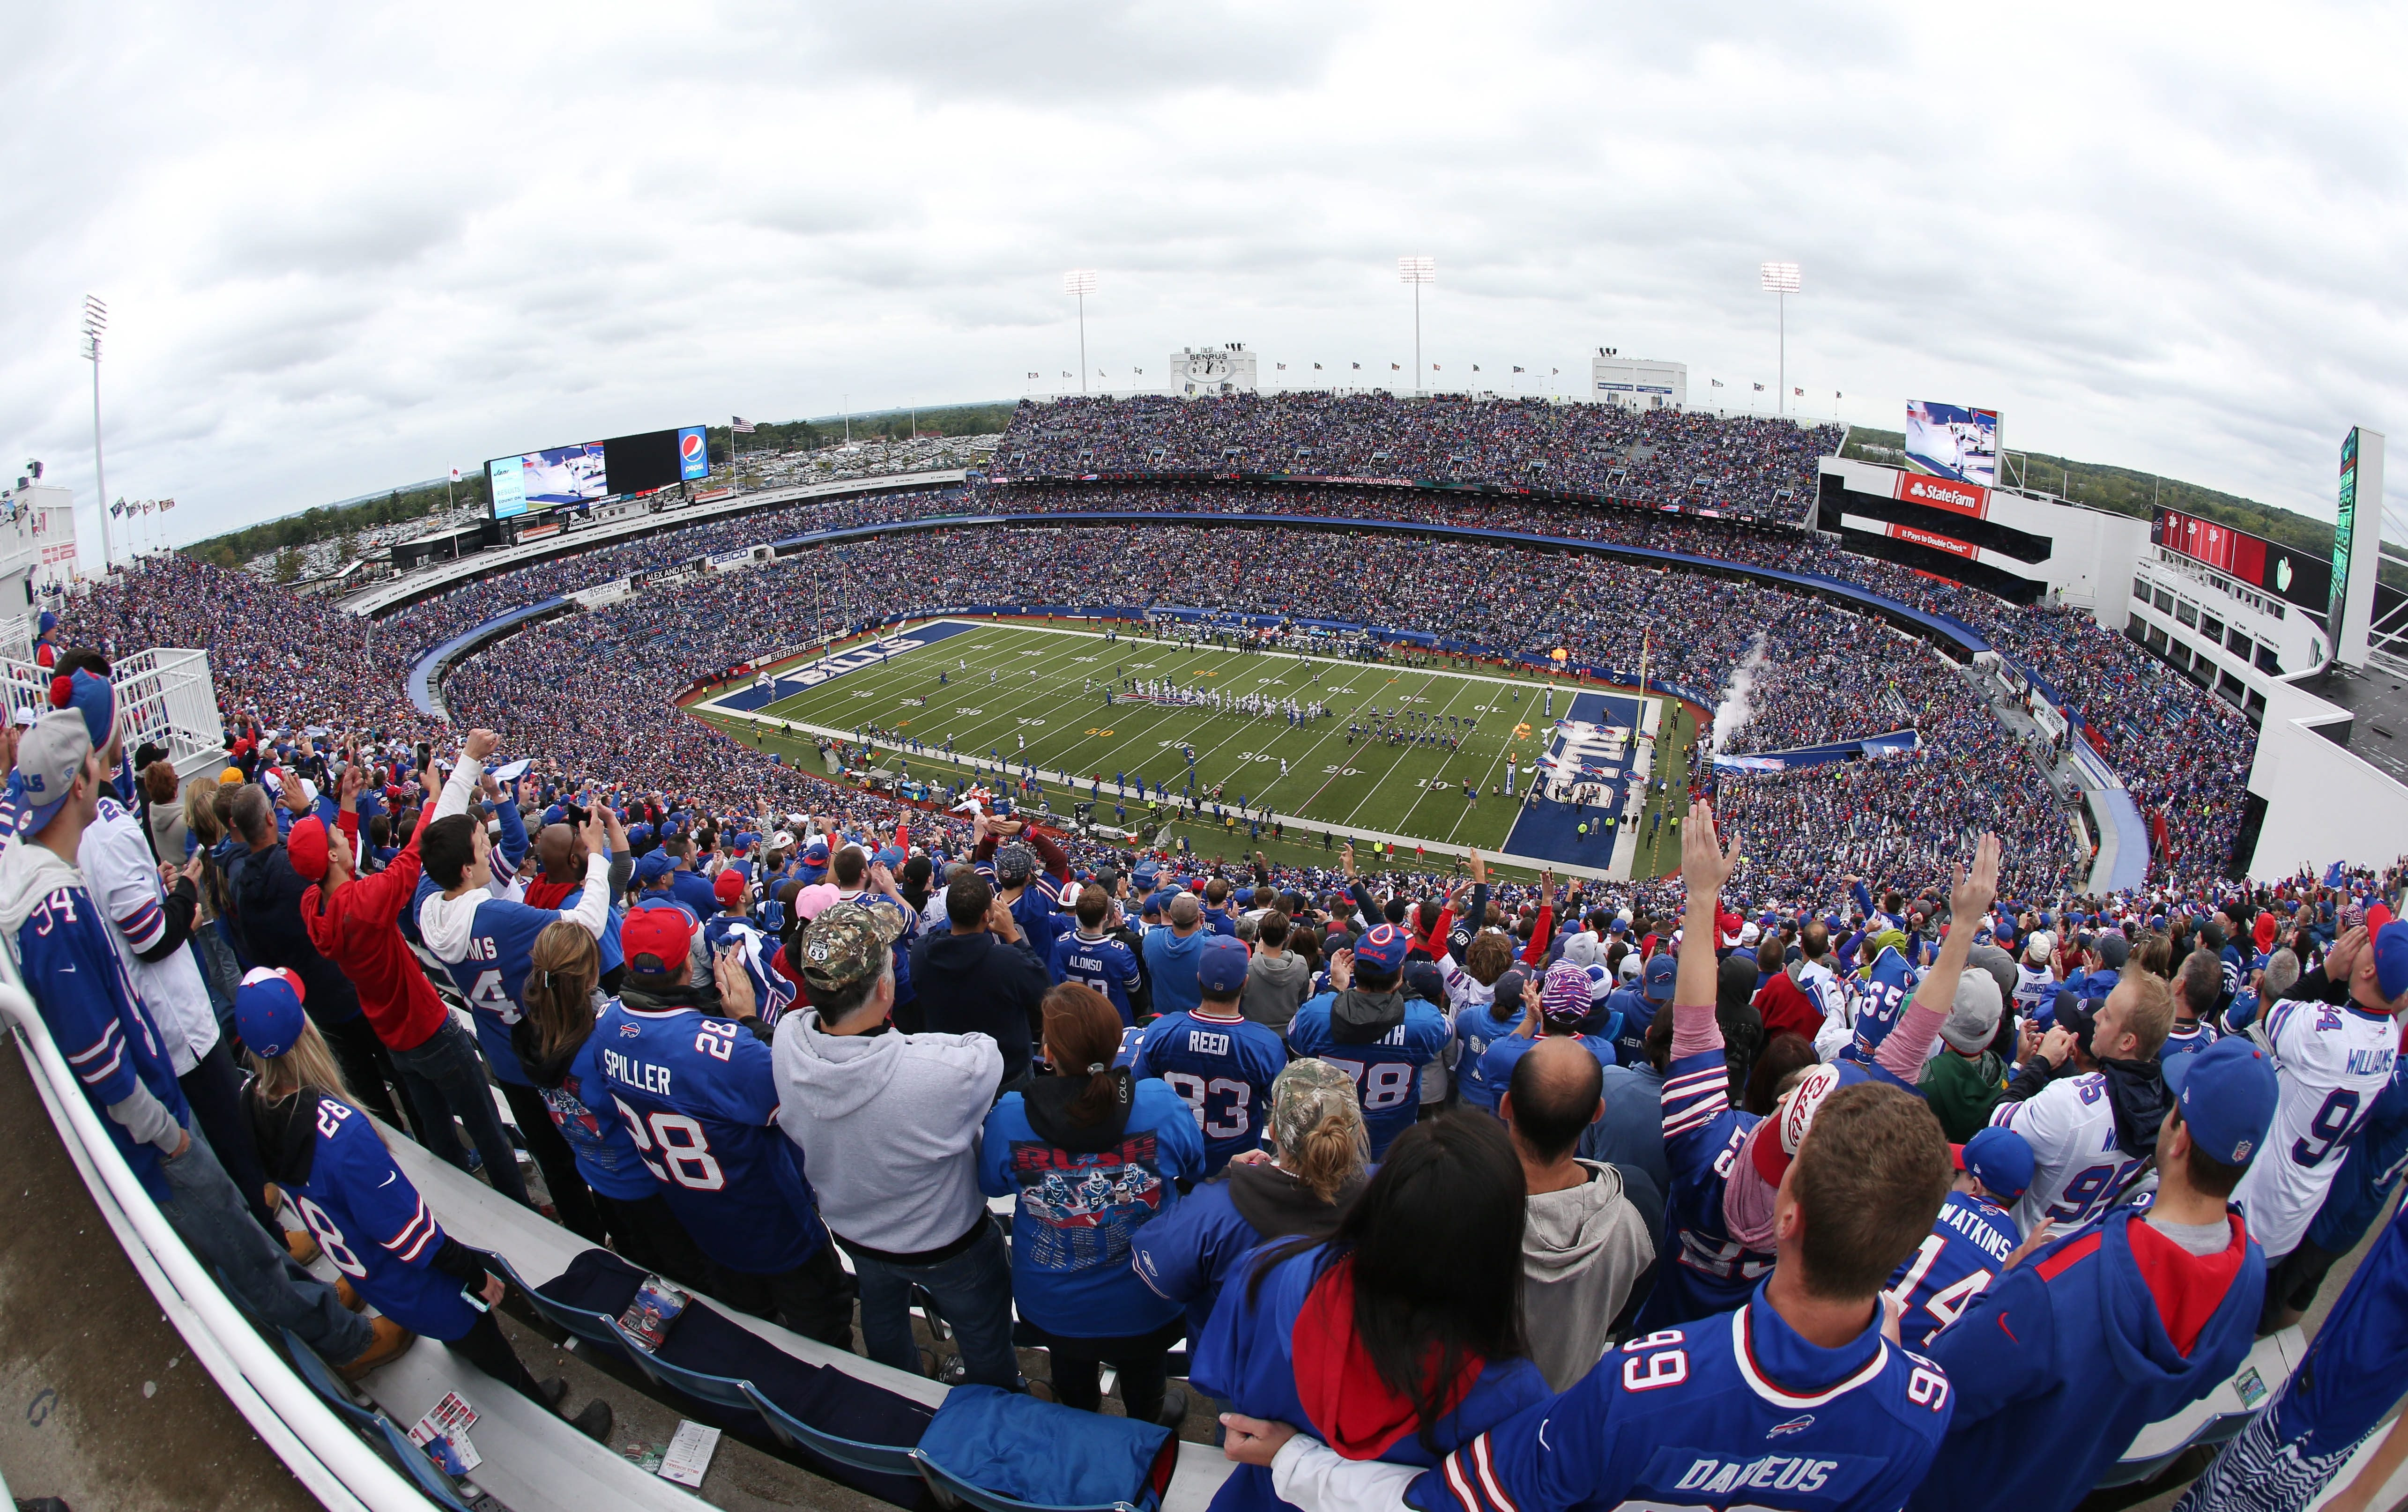 No matter what happens in the offseason, there's always a sellout for the opener at Ralph Wilson Stadium.